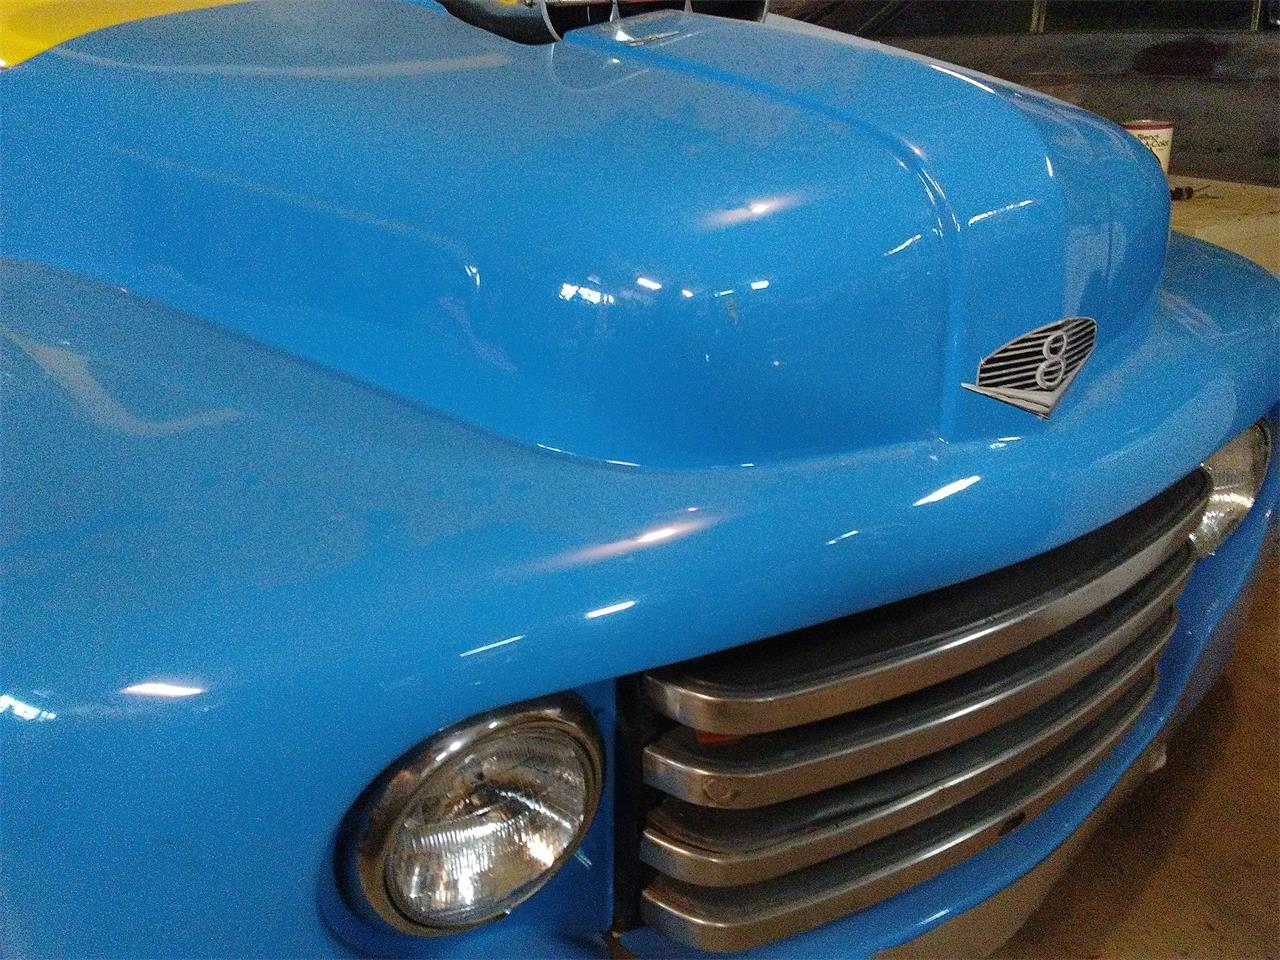 1948 Ford Panel Truck for sale in Northwoods, IL – photo 3